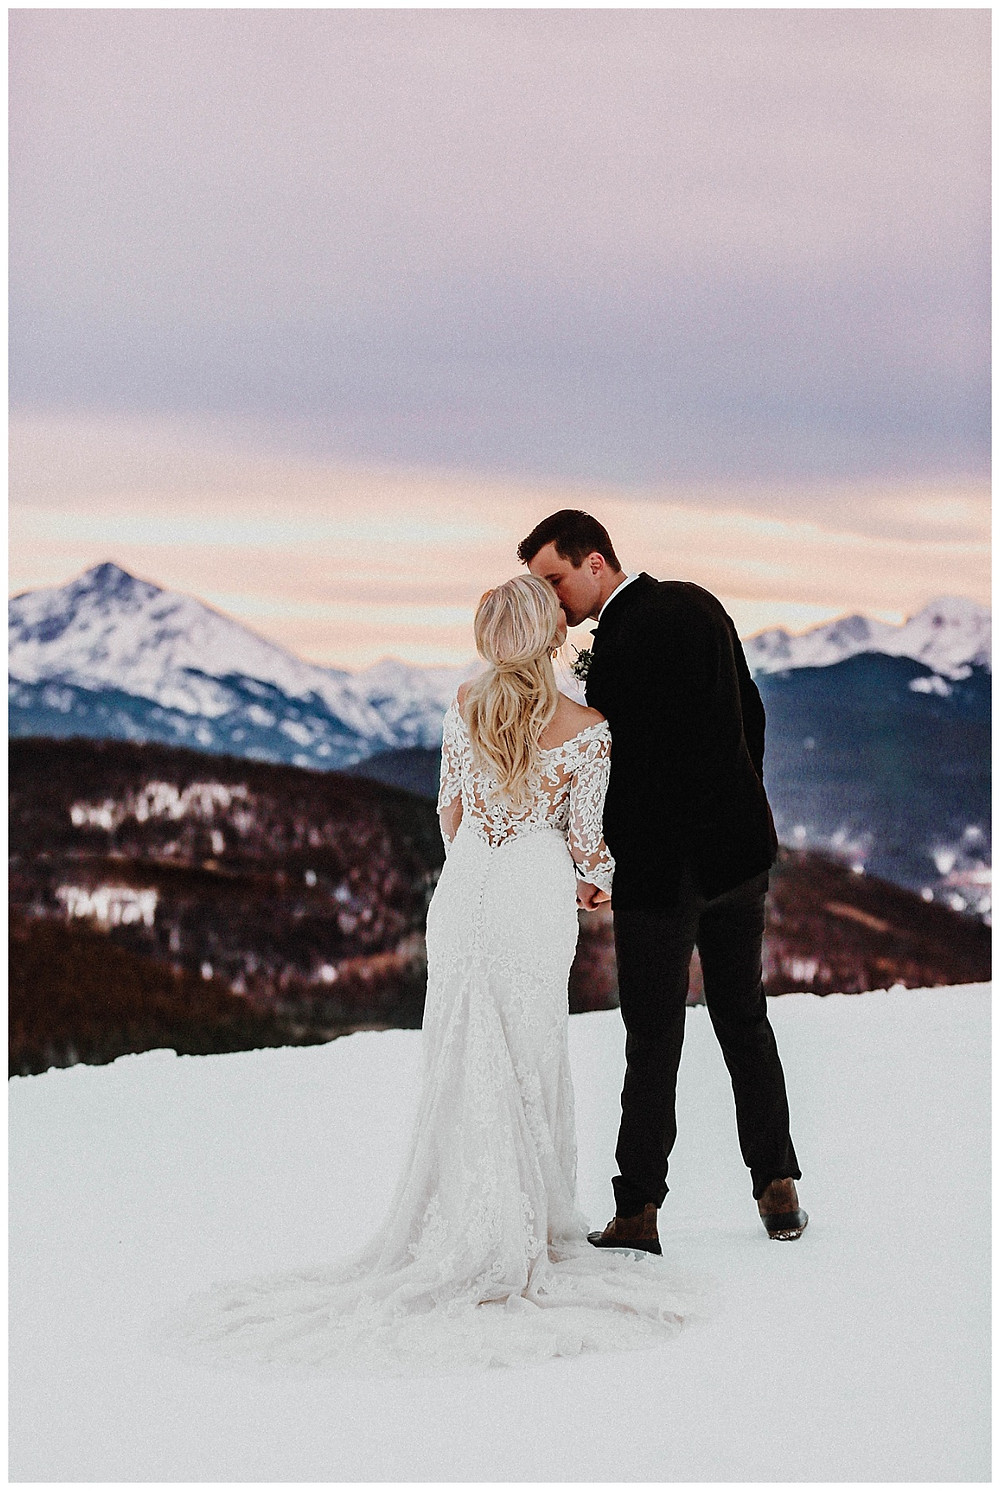 Callie Riesling Photography - Vail Winter Wedding